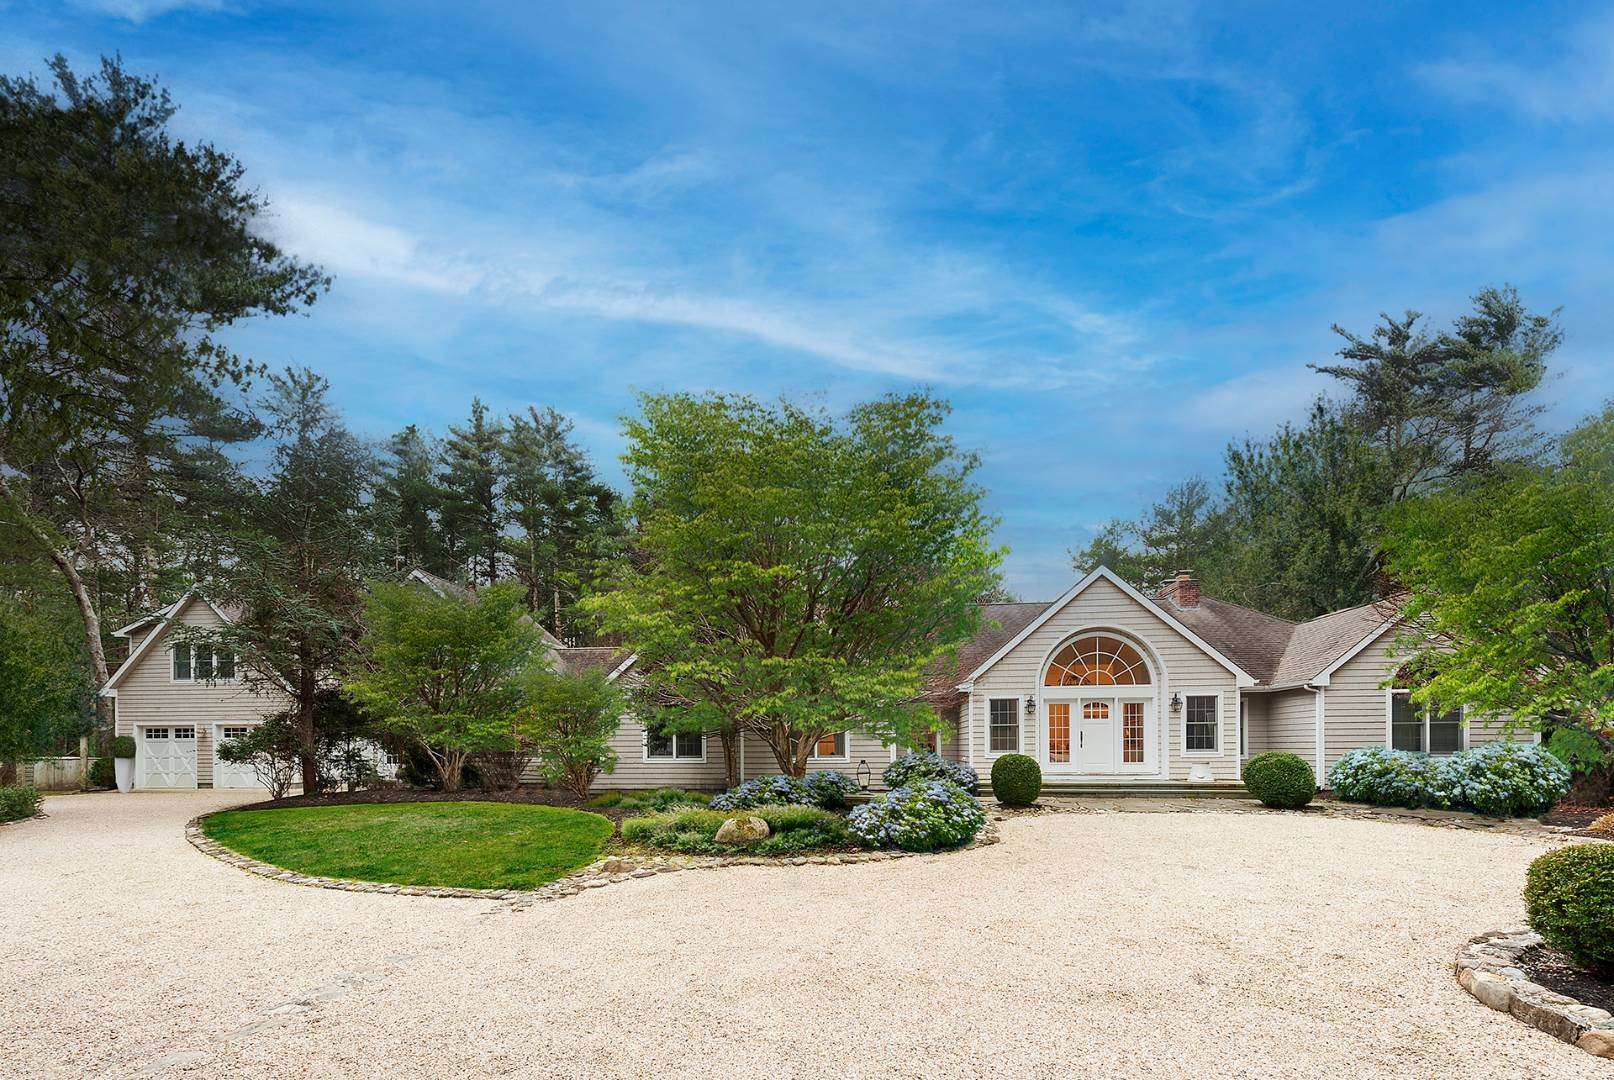 Single Family Home for Sale at Gated Six Bedroom Residence On 4 Acres With Tennis 25 Crooked Highway, East Hampton, NY 11937